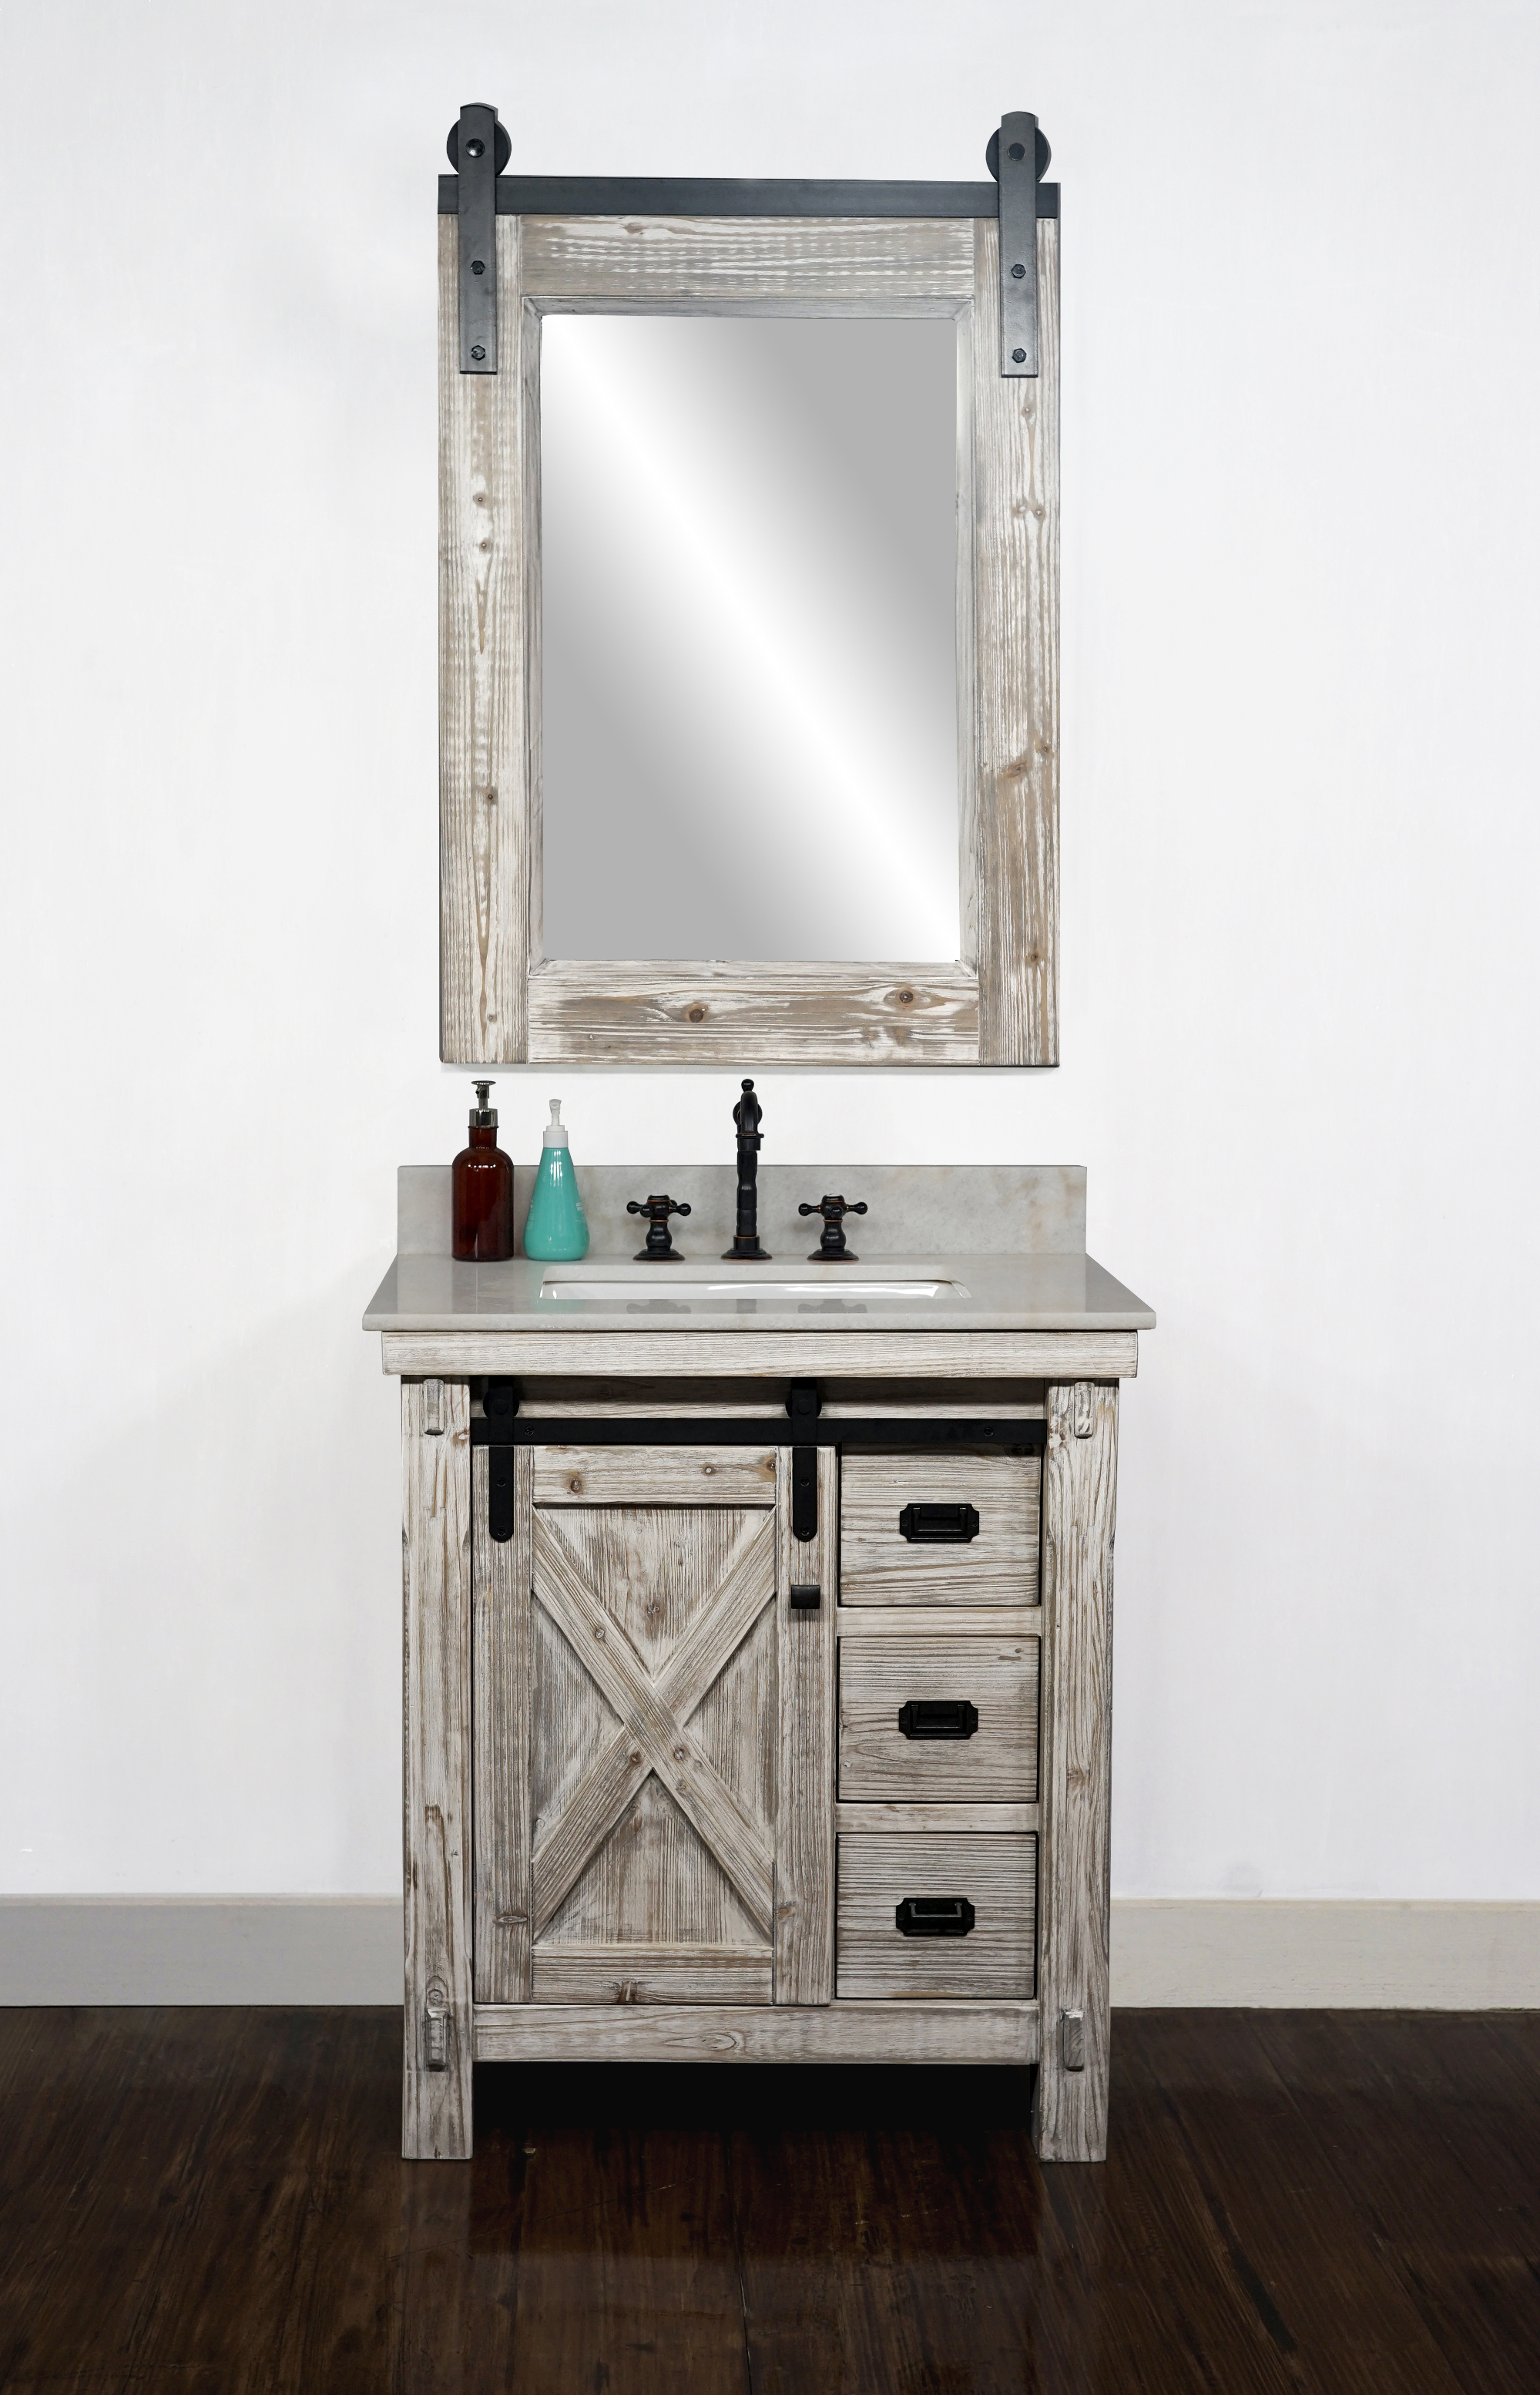 "30"" Rustic Solid Fir Barn Door Style Single Sink Vanity in White Washed - No Faucet with Countertop Options"